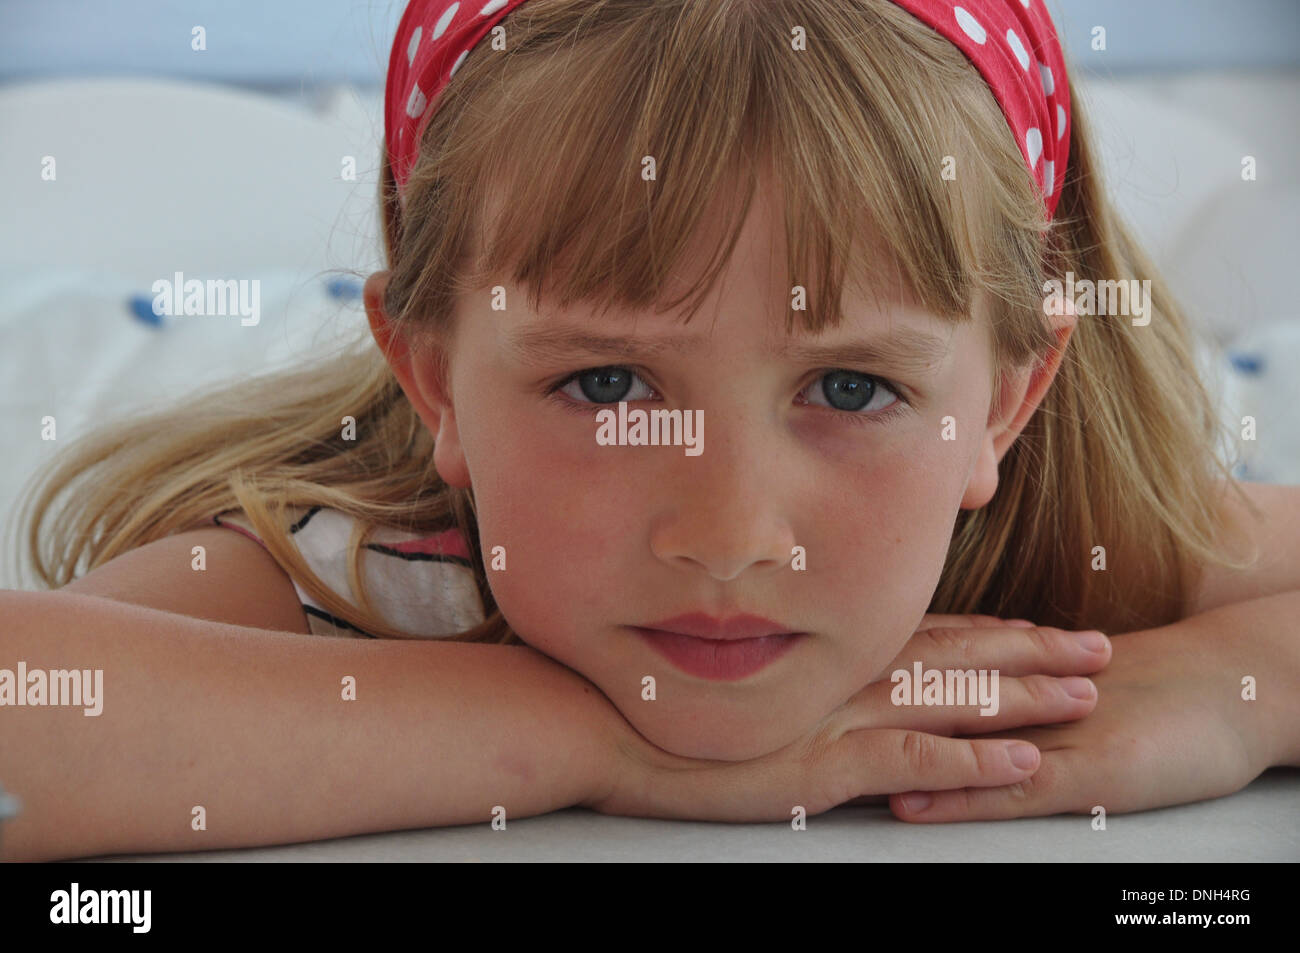 portrait of little blonde girl looking serious and sad looking directly into camera - Stock Image